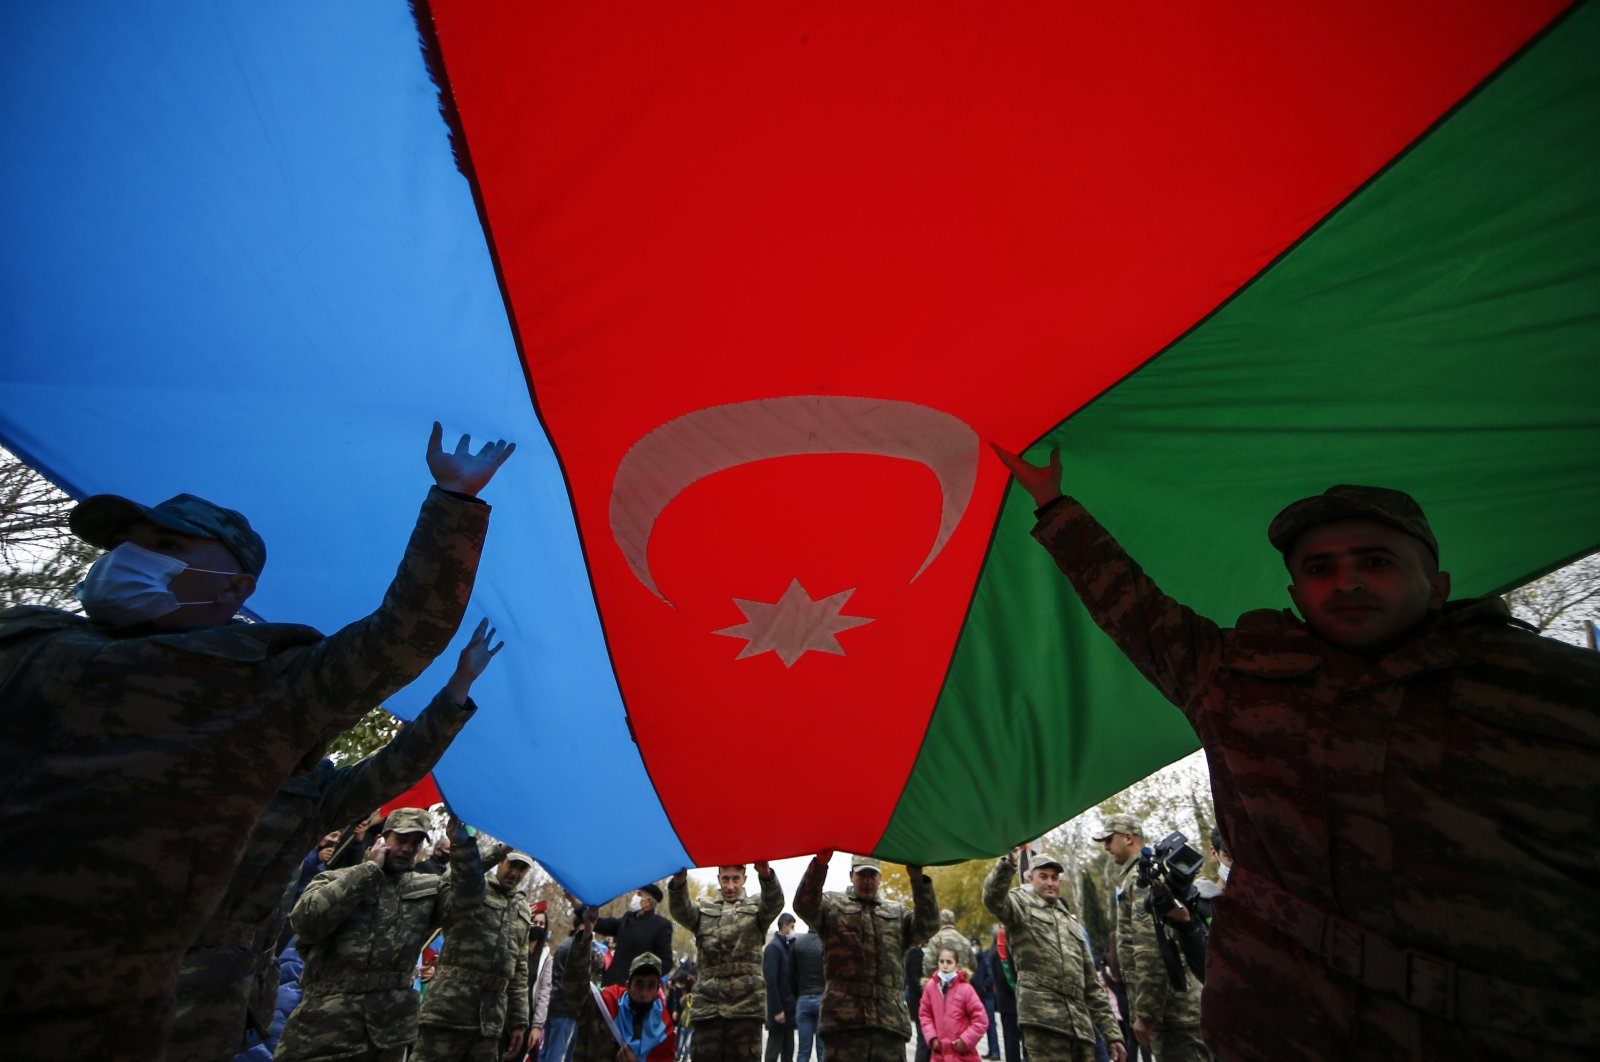 Azerbaijani soldiers carry a huge national flag as they celebrate the transfer of the Lachin region to Azerbaijan's control, as part of a peace deal that required Armenian forces to cede the Azerbaijani territories they held outside Nagorno-Karabakh, in Aghjabadi, Azerbaijan, Dec. 1, 2020. (AP Photo)